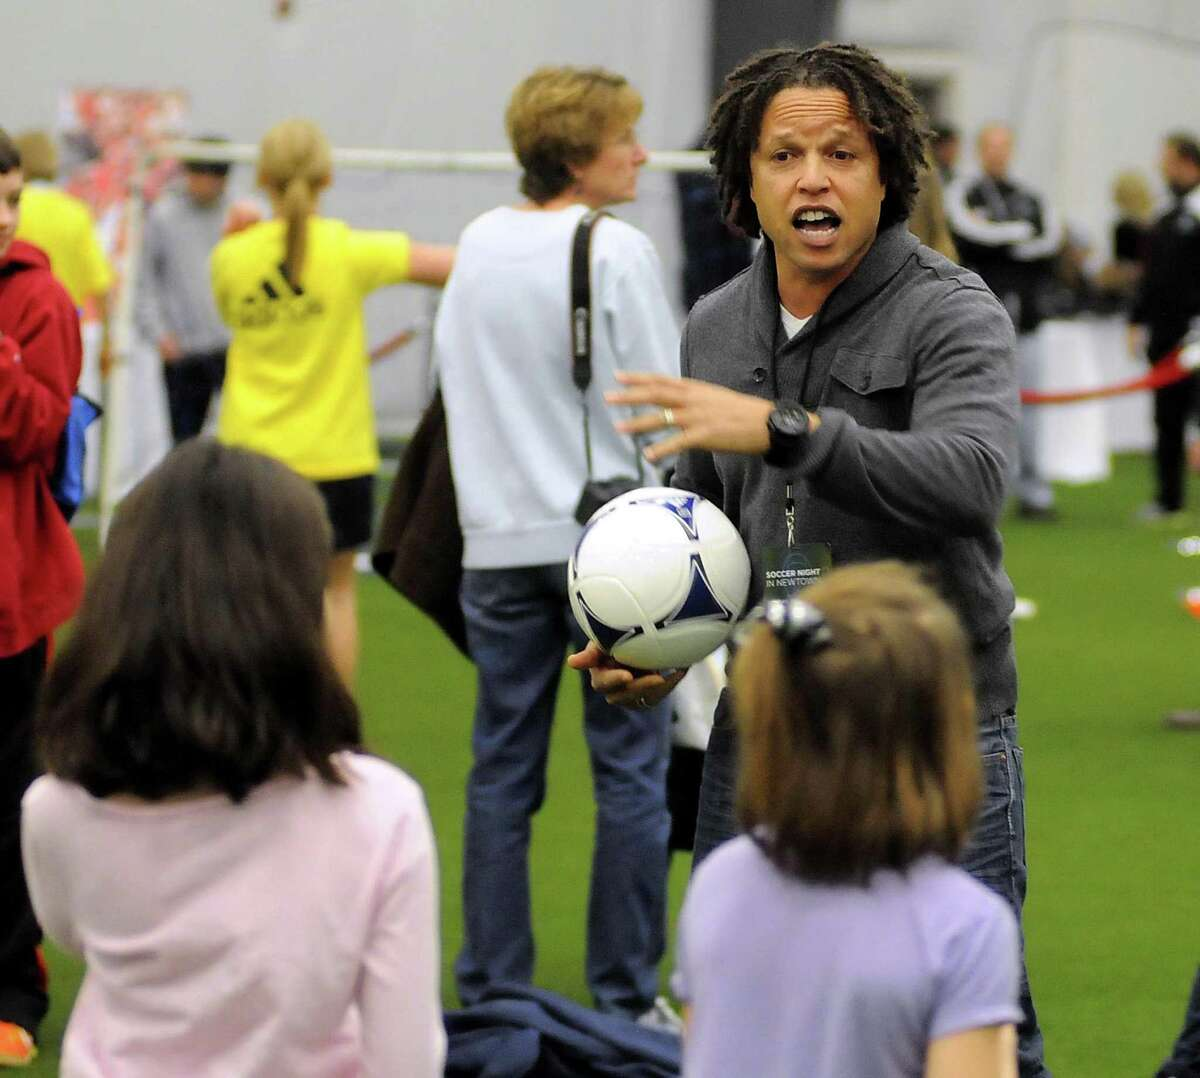 American soccer player, Cobi Jones, gives instructions to students during the Soccer Night in Newtown on Monday Jan. 7, 2013.